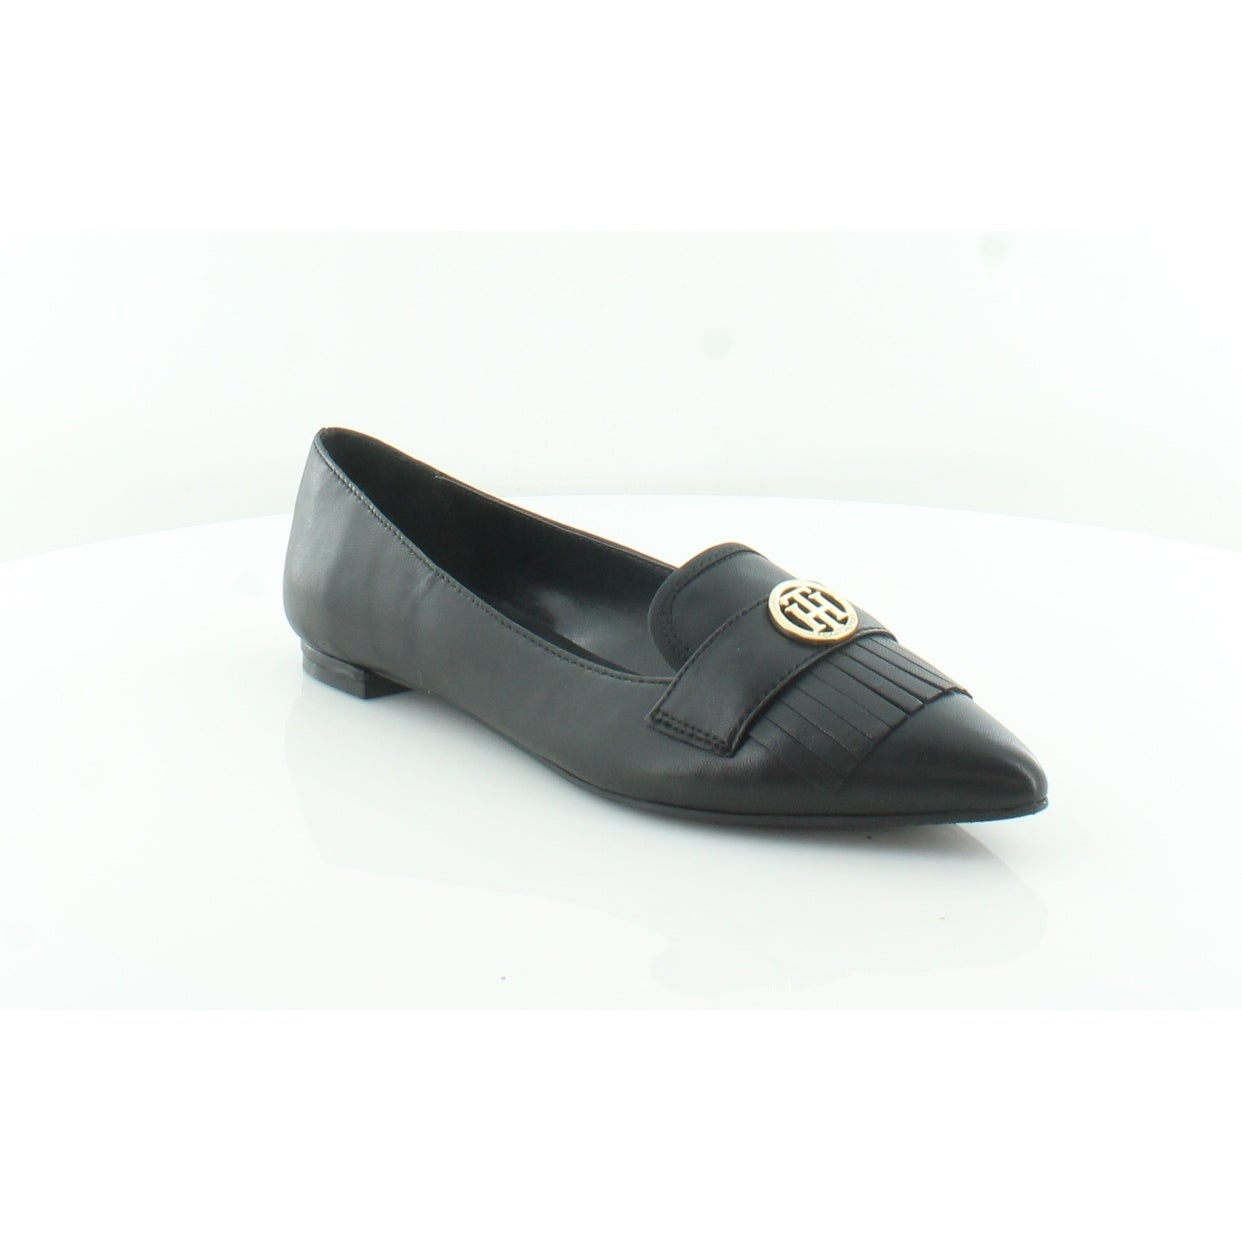 3e34976b9 Buy Tommy Hilfiger Women s Flats Online at Overstock